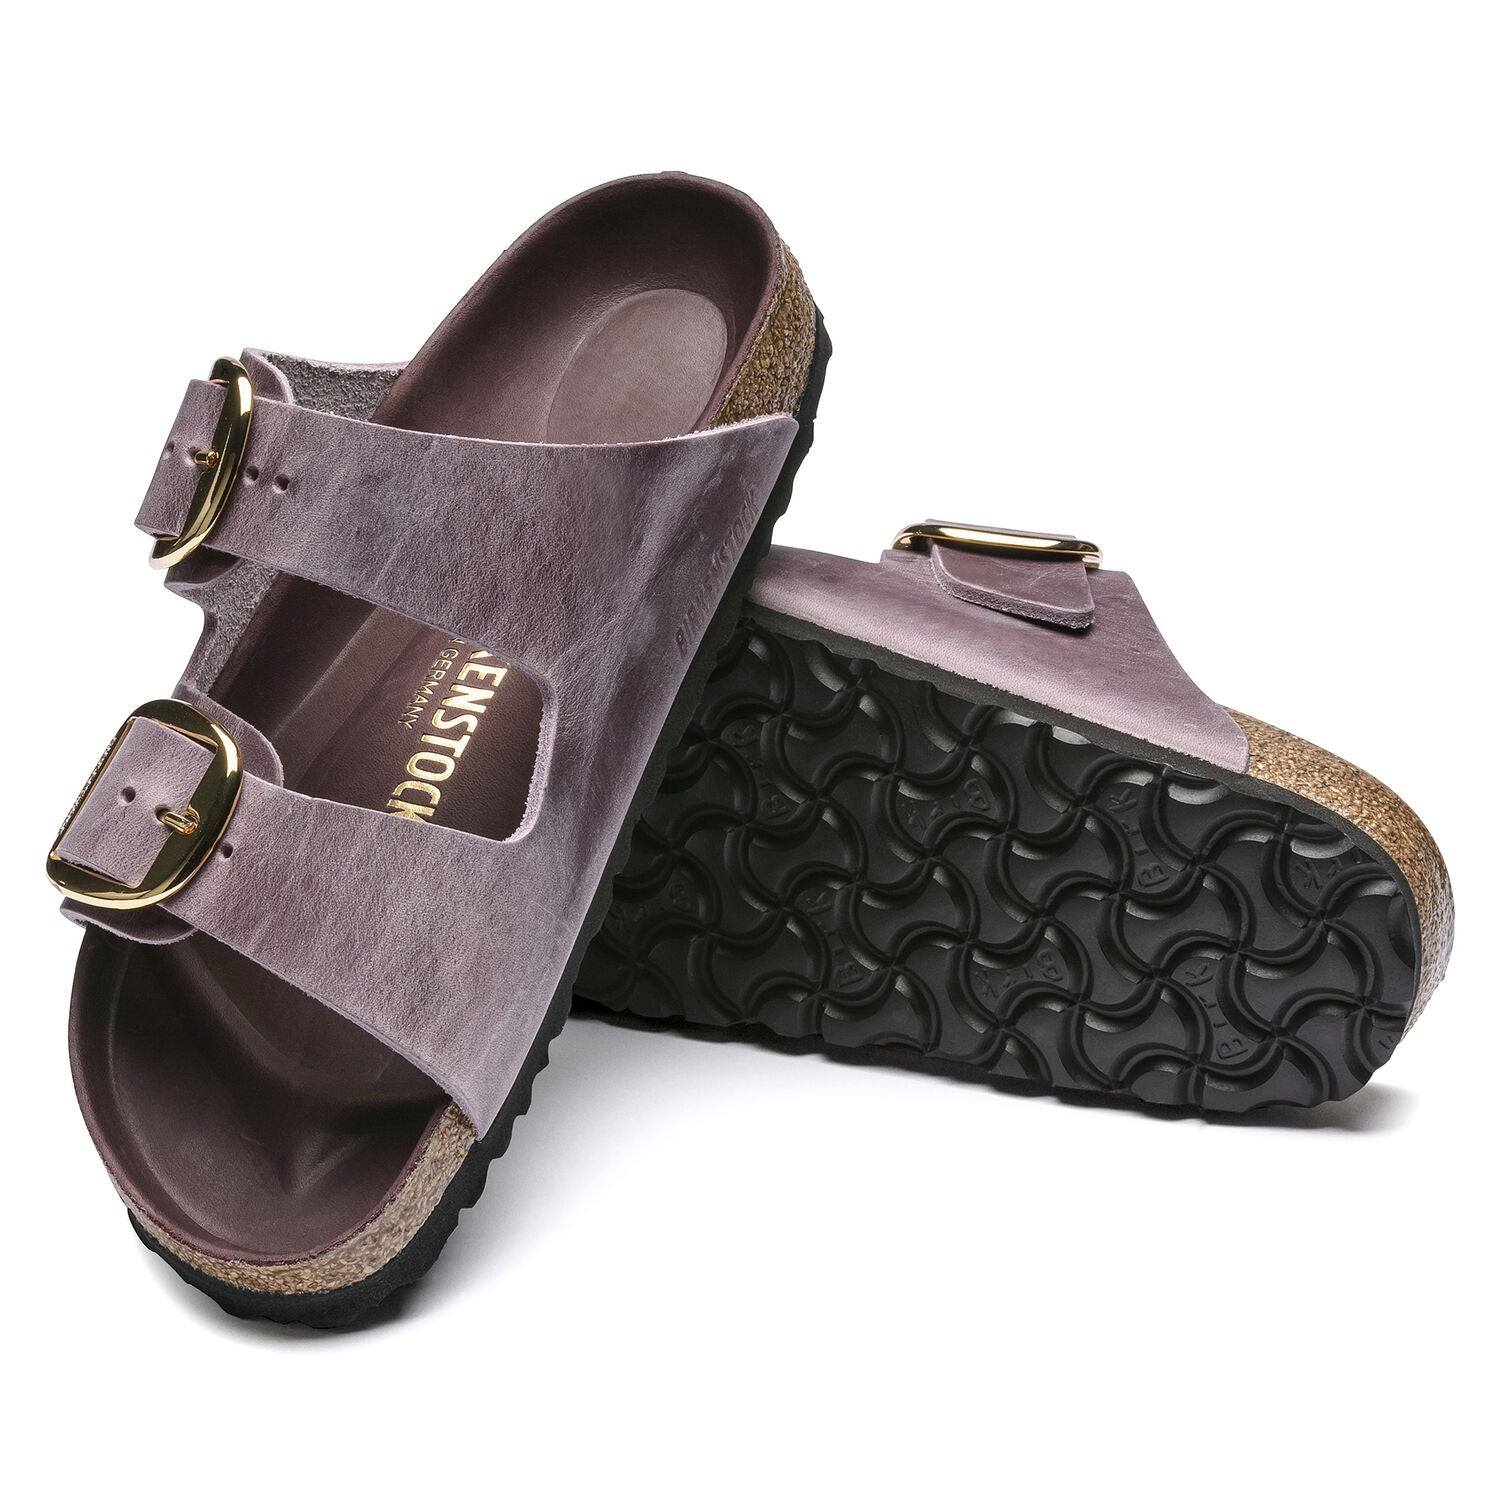 Arizona Big Buckle Lavender Blush Oiled Leather Narrow - Milu James St